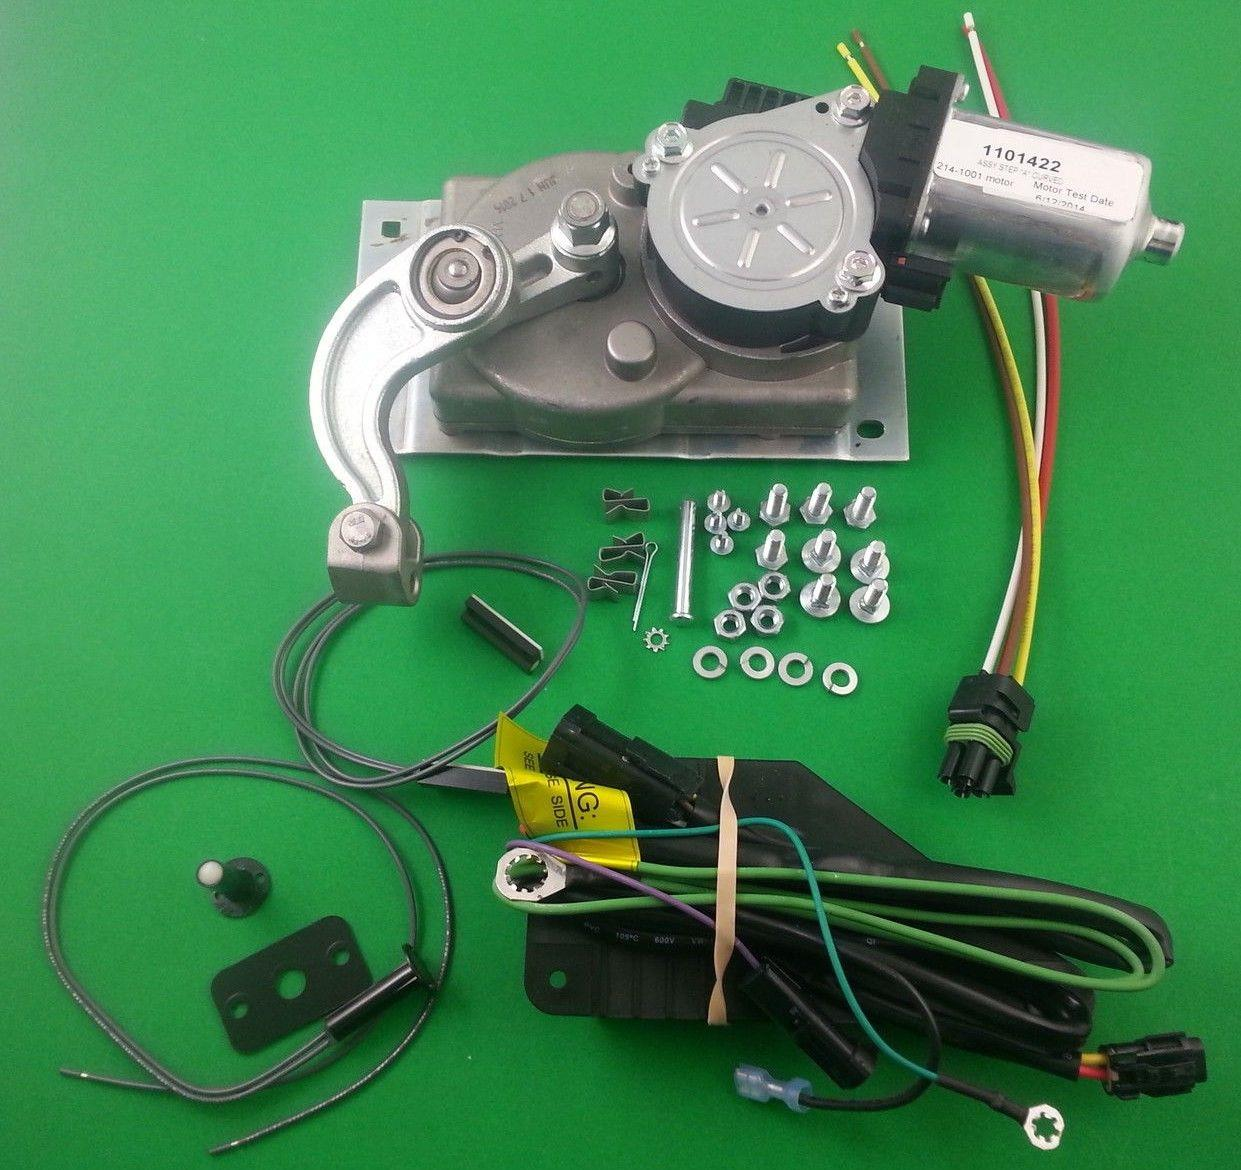 Wiring Diagram For Kwikee Step Unique 28 909770000 Lippert 379145 Rv Entry Motor Conversion Kit